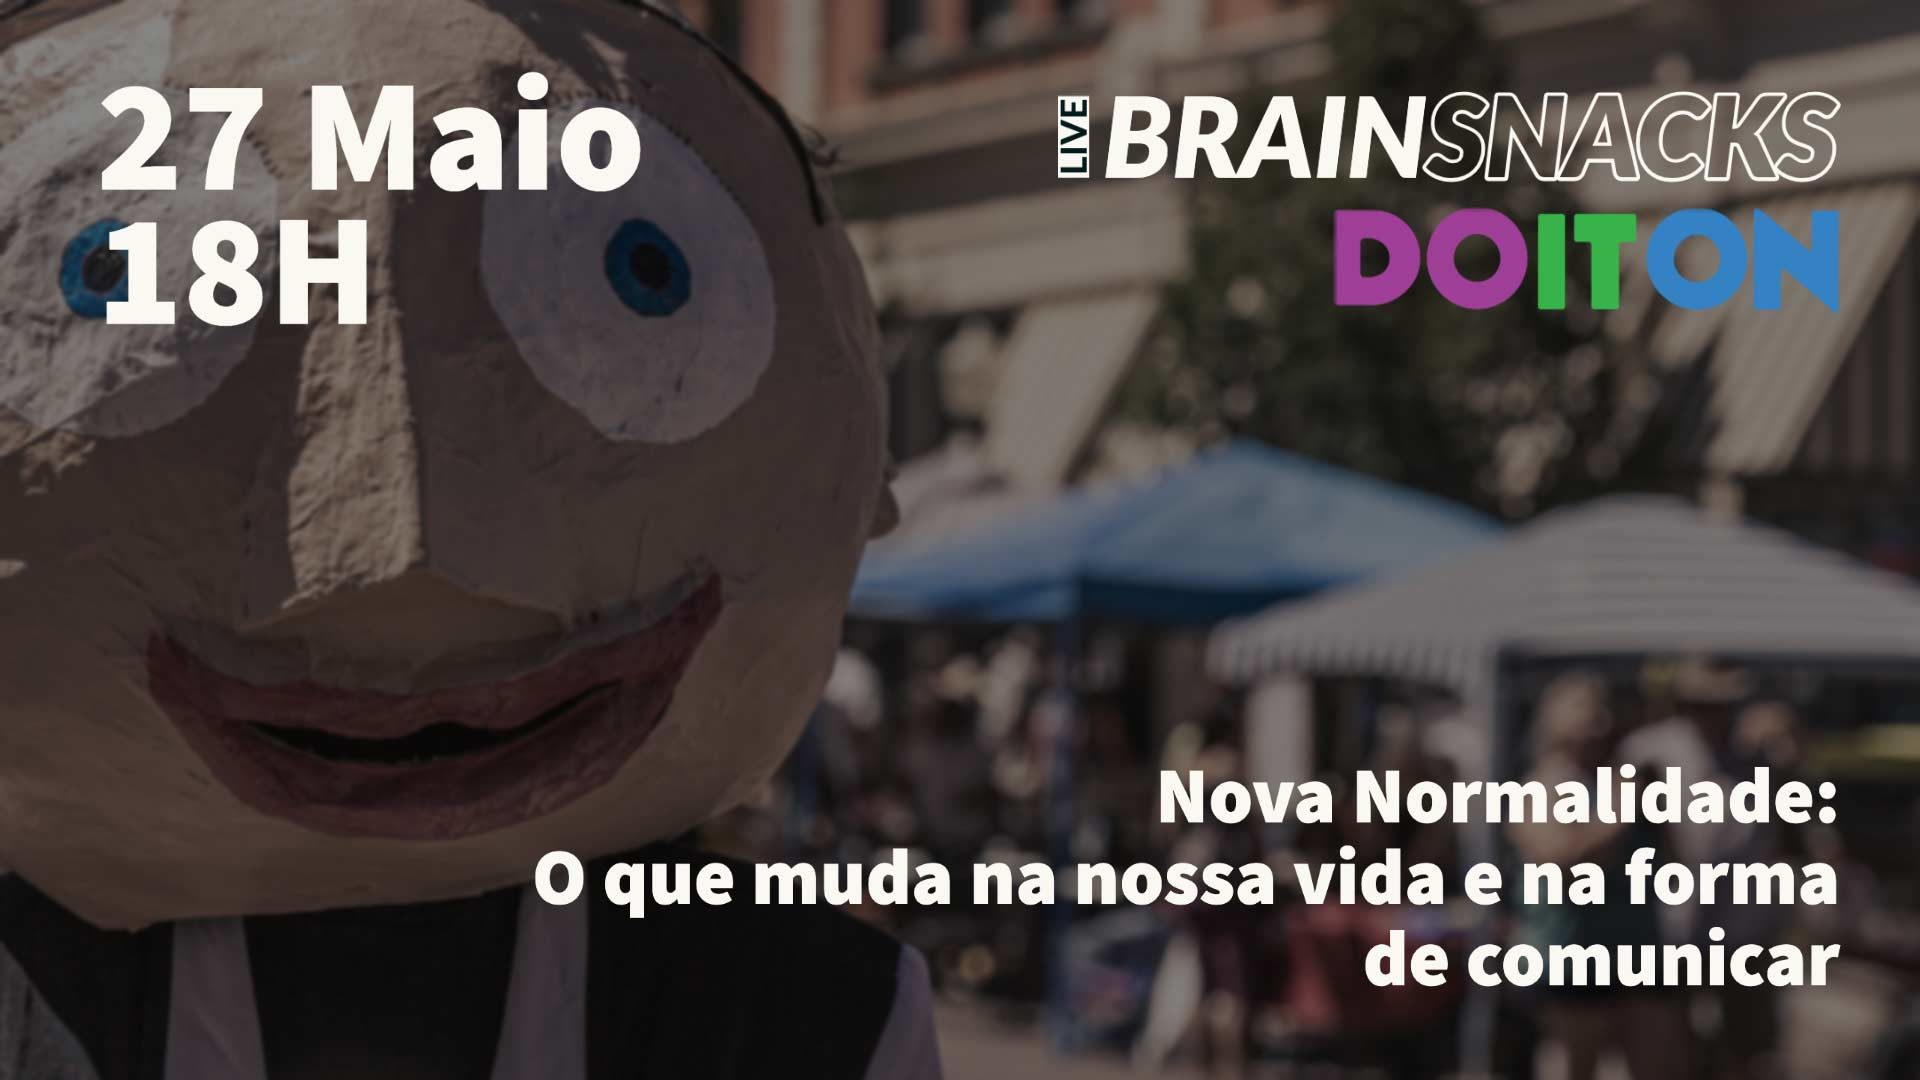 Live Brain Snacks by Do It On: Nova Normalidade: O que muda na nossa vida e na forma de comunicar